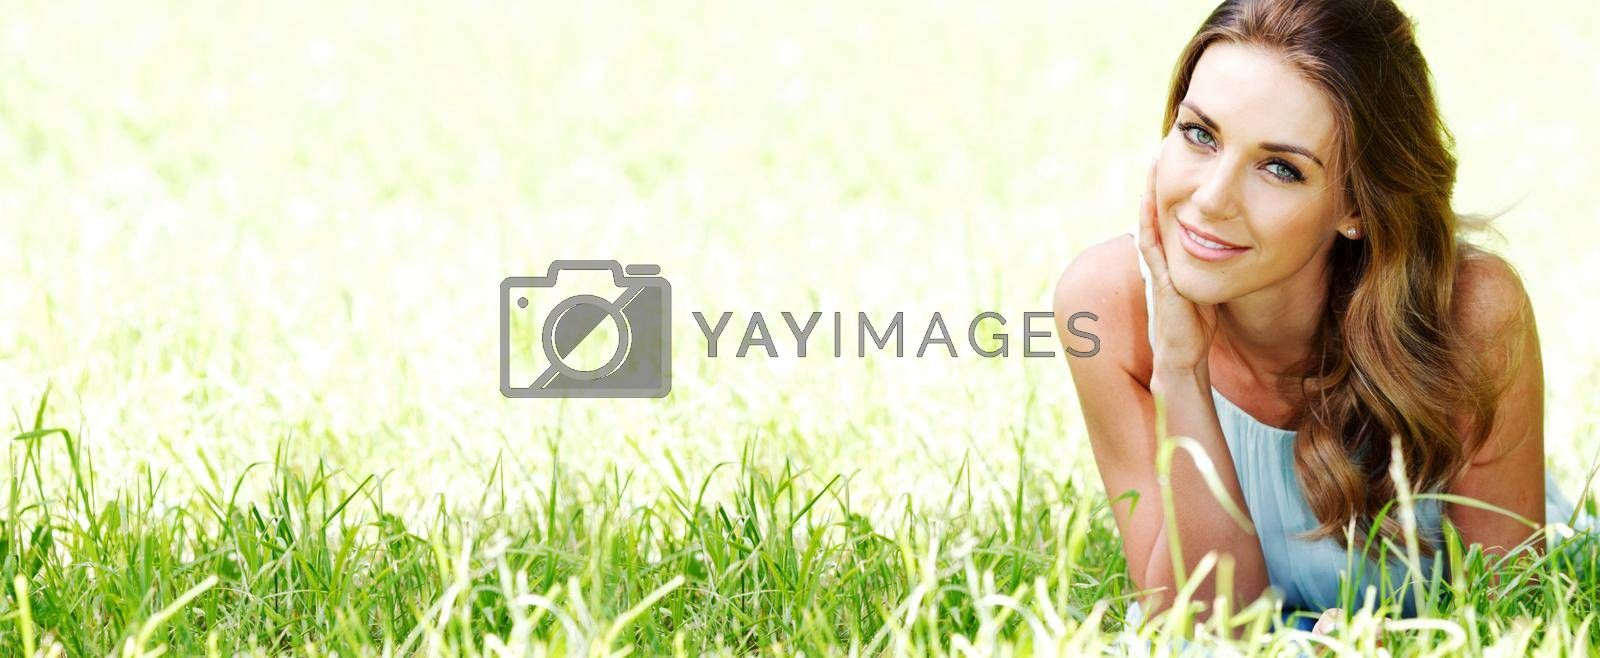 Royalty free image of Smiling girl portrait by Yellowj